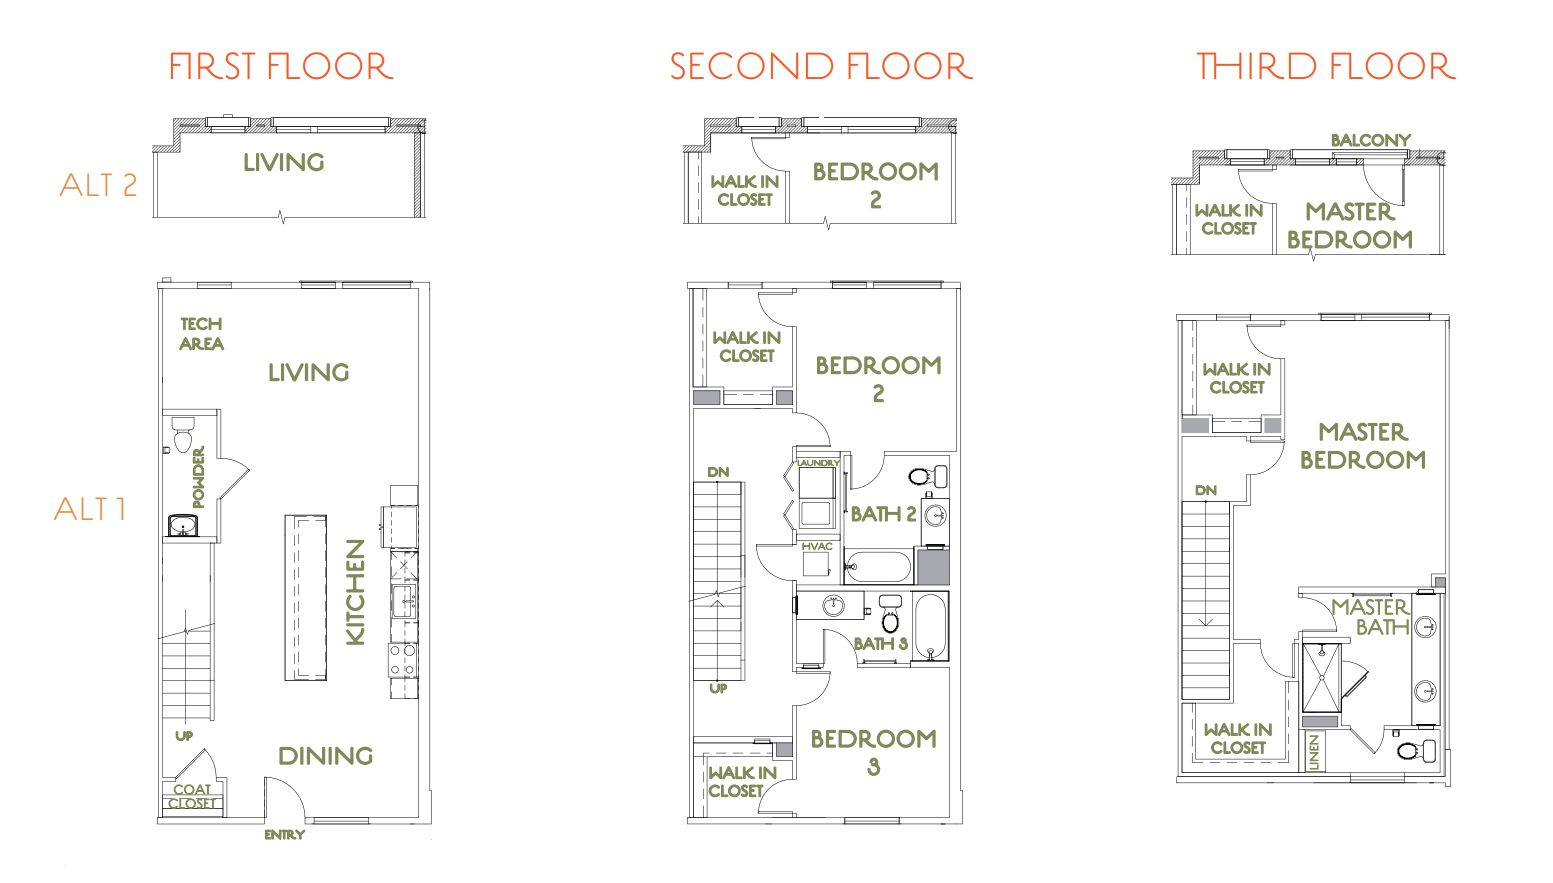 Capitol 6 Alt 1:Floor Plan